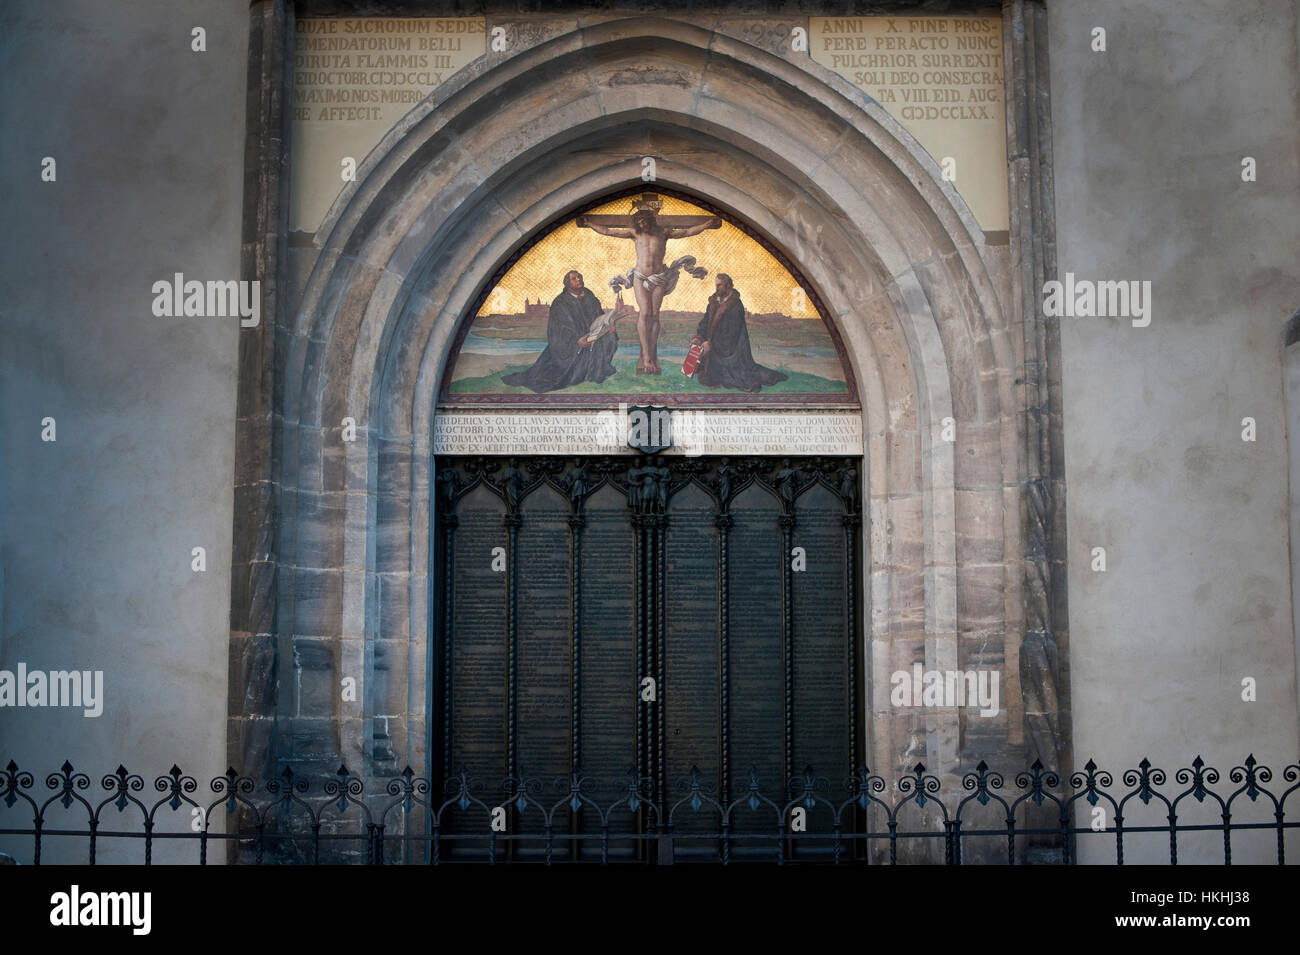 The Quot Theses Doors Quot Commemorating Luthers 95 Theses At